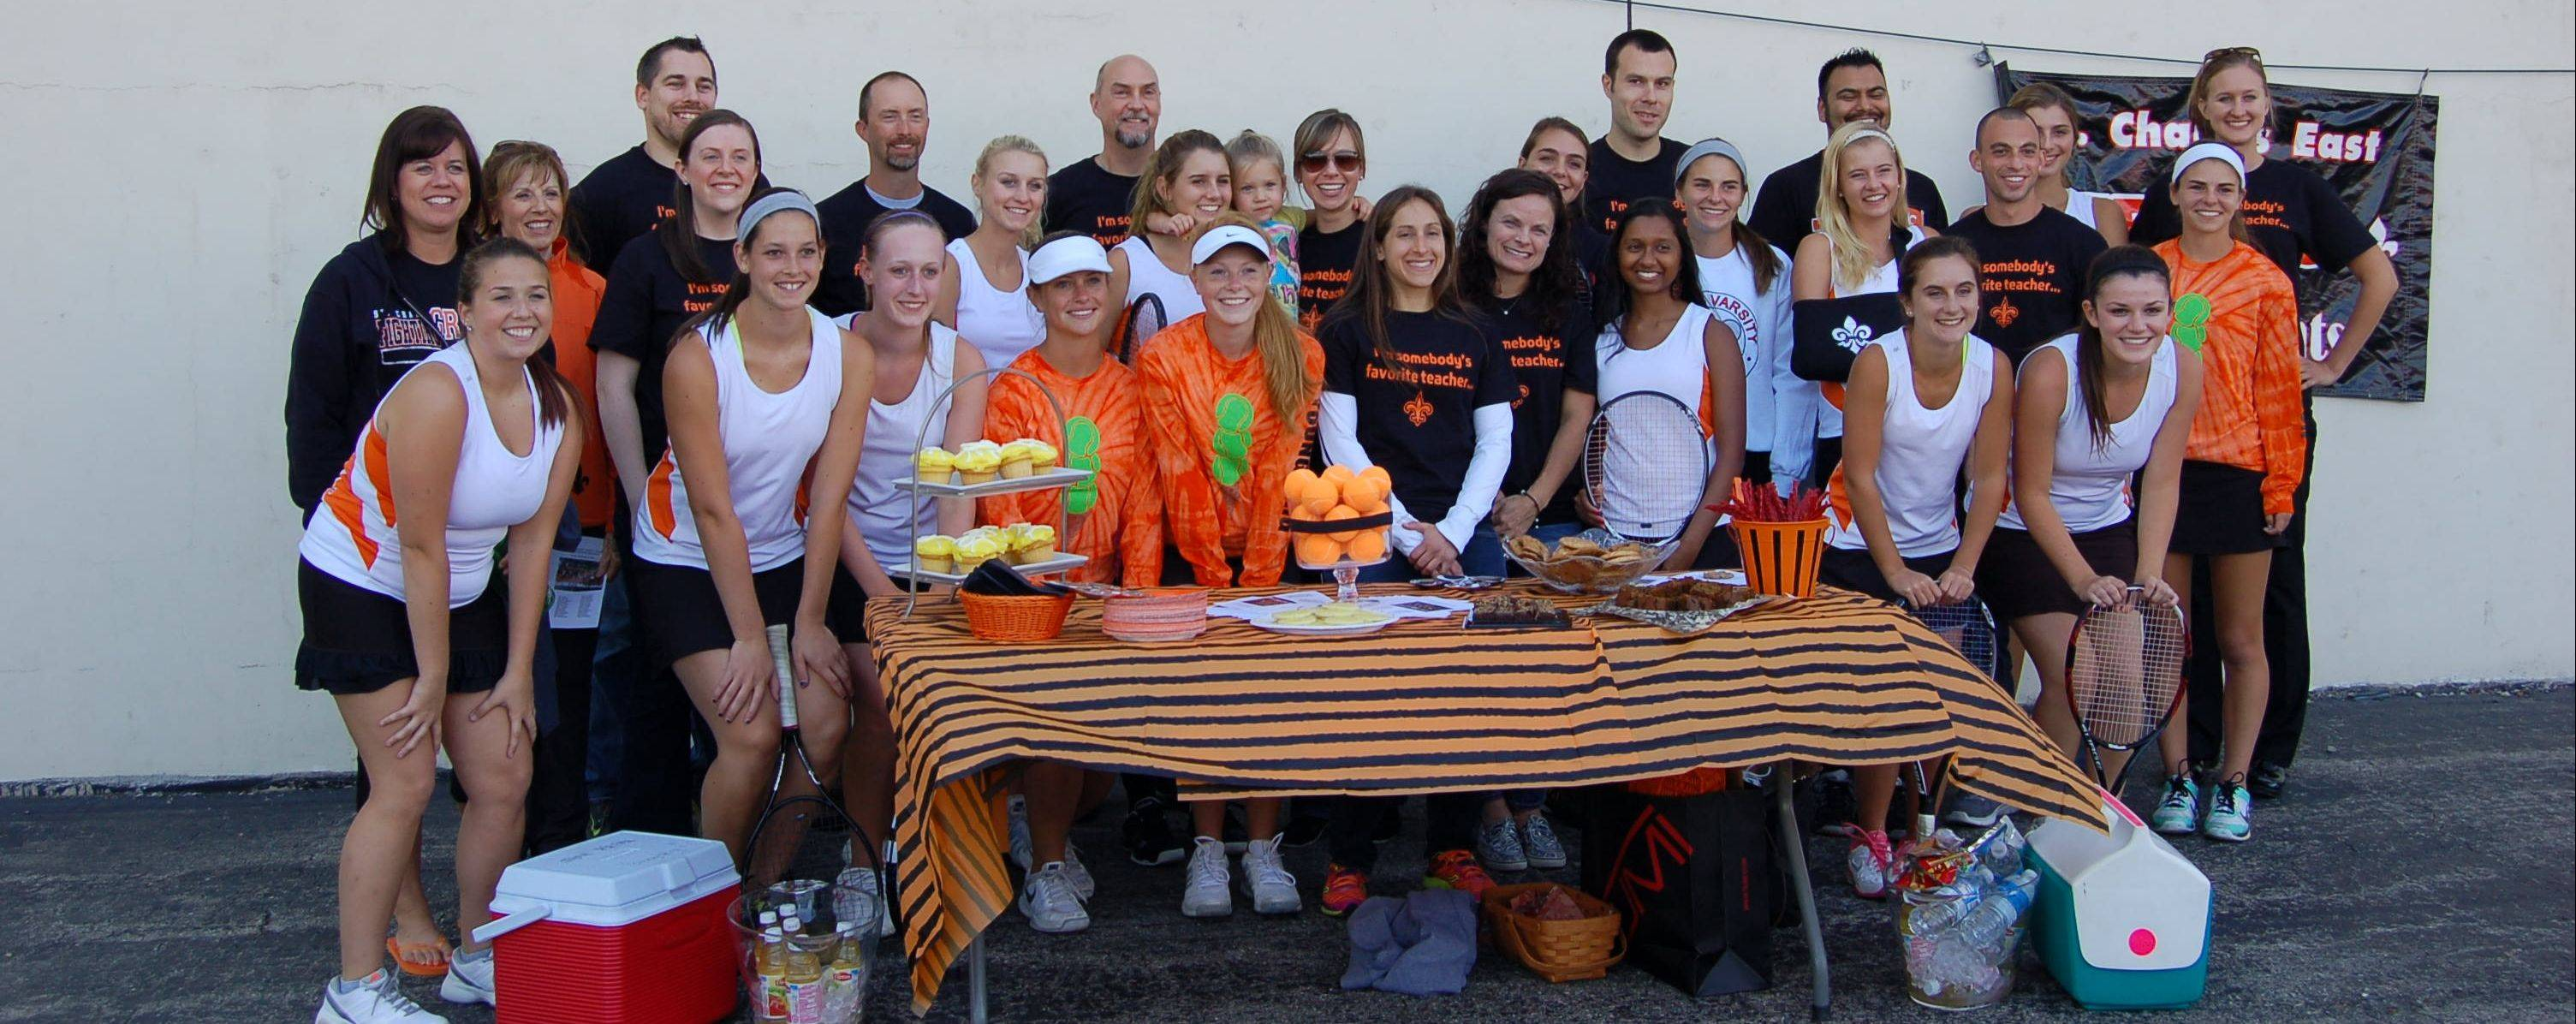 The St. Charles East girls tennis program has been busy helping others in the community this fall including making back packs for needy children and raising money for the Northern Illinois Food Bank.